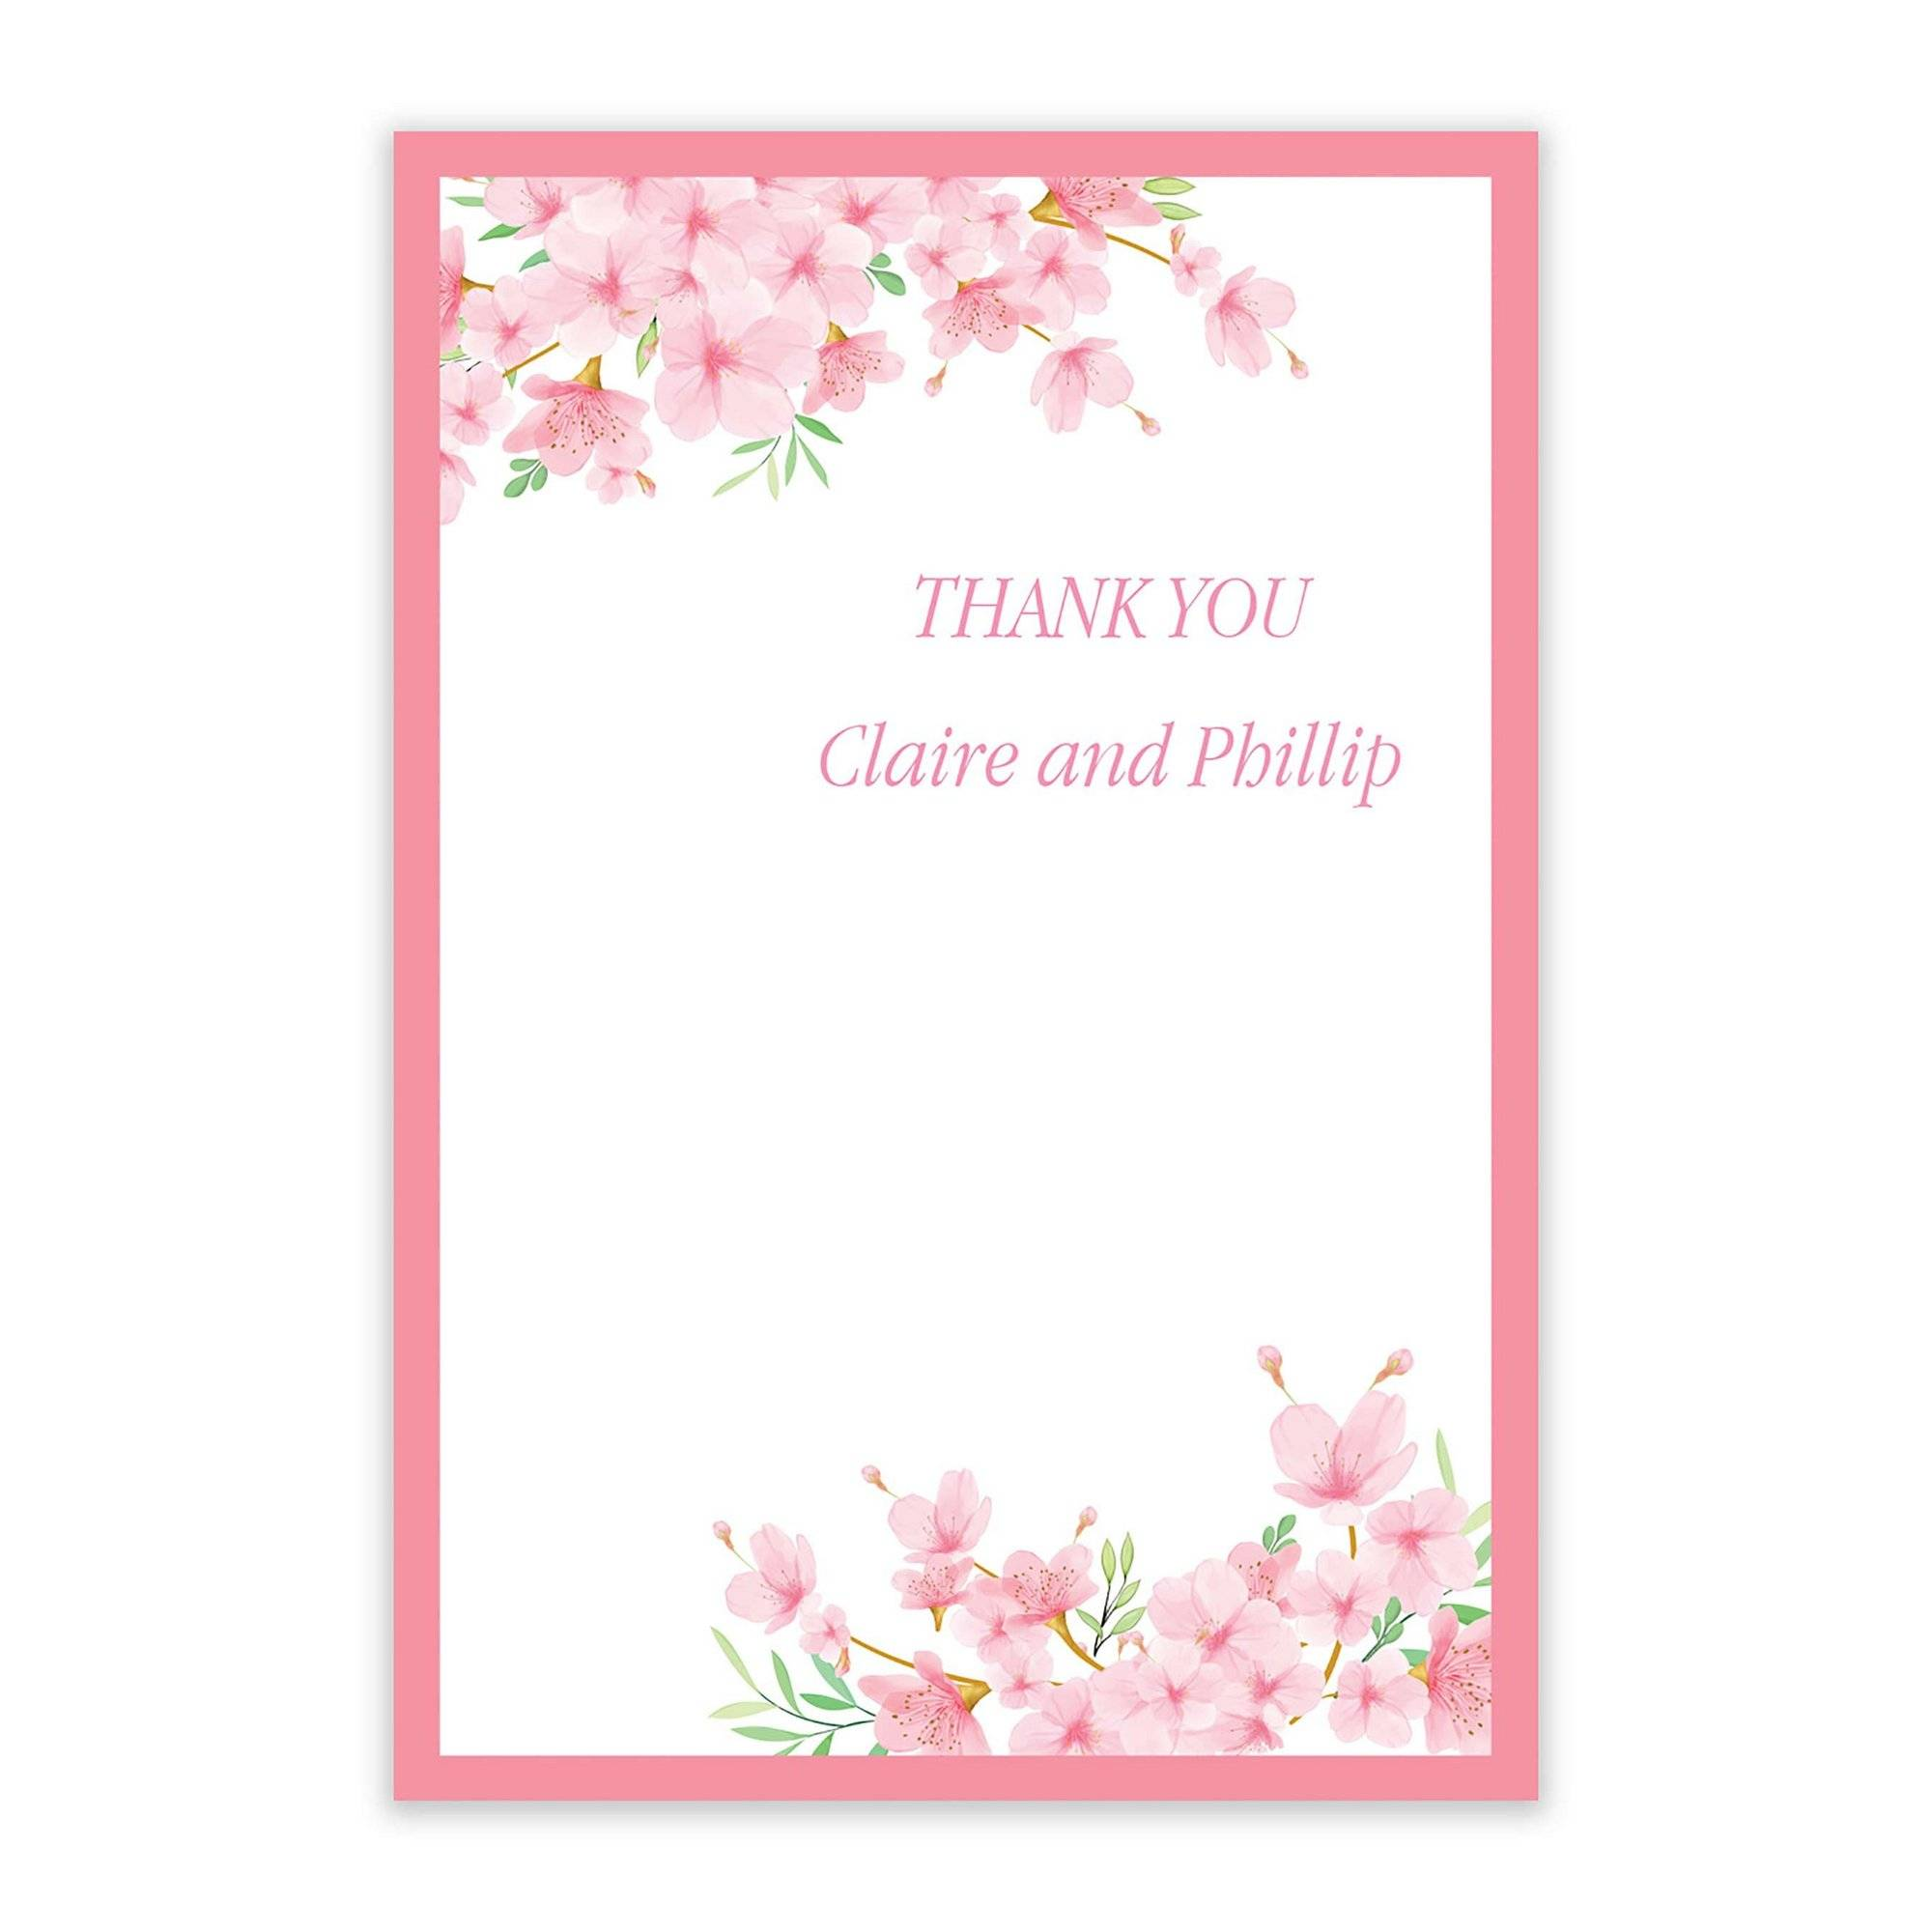 Studio 40 Cherry Blossom Thank You Cards  - Pink